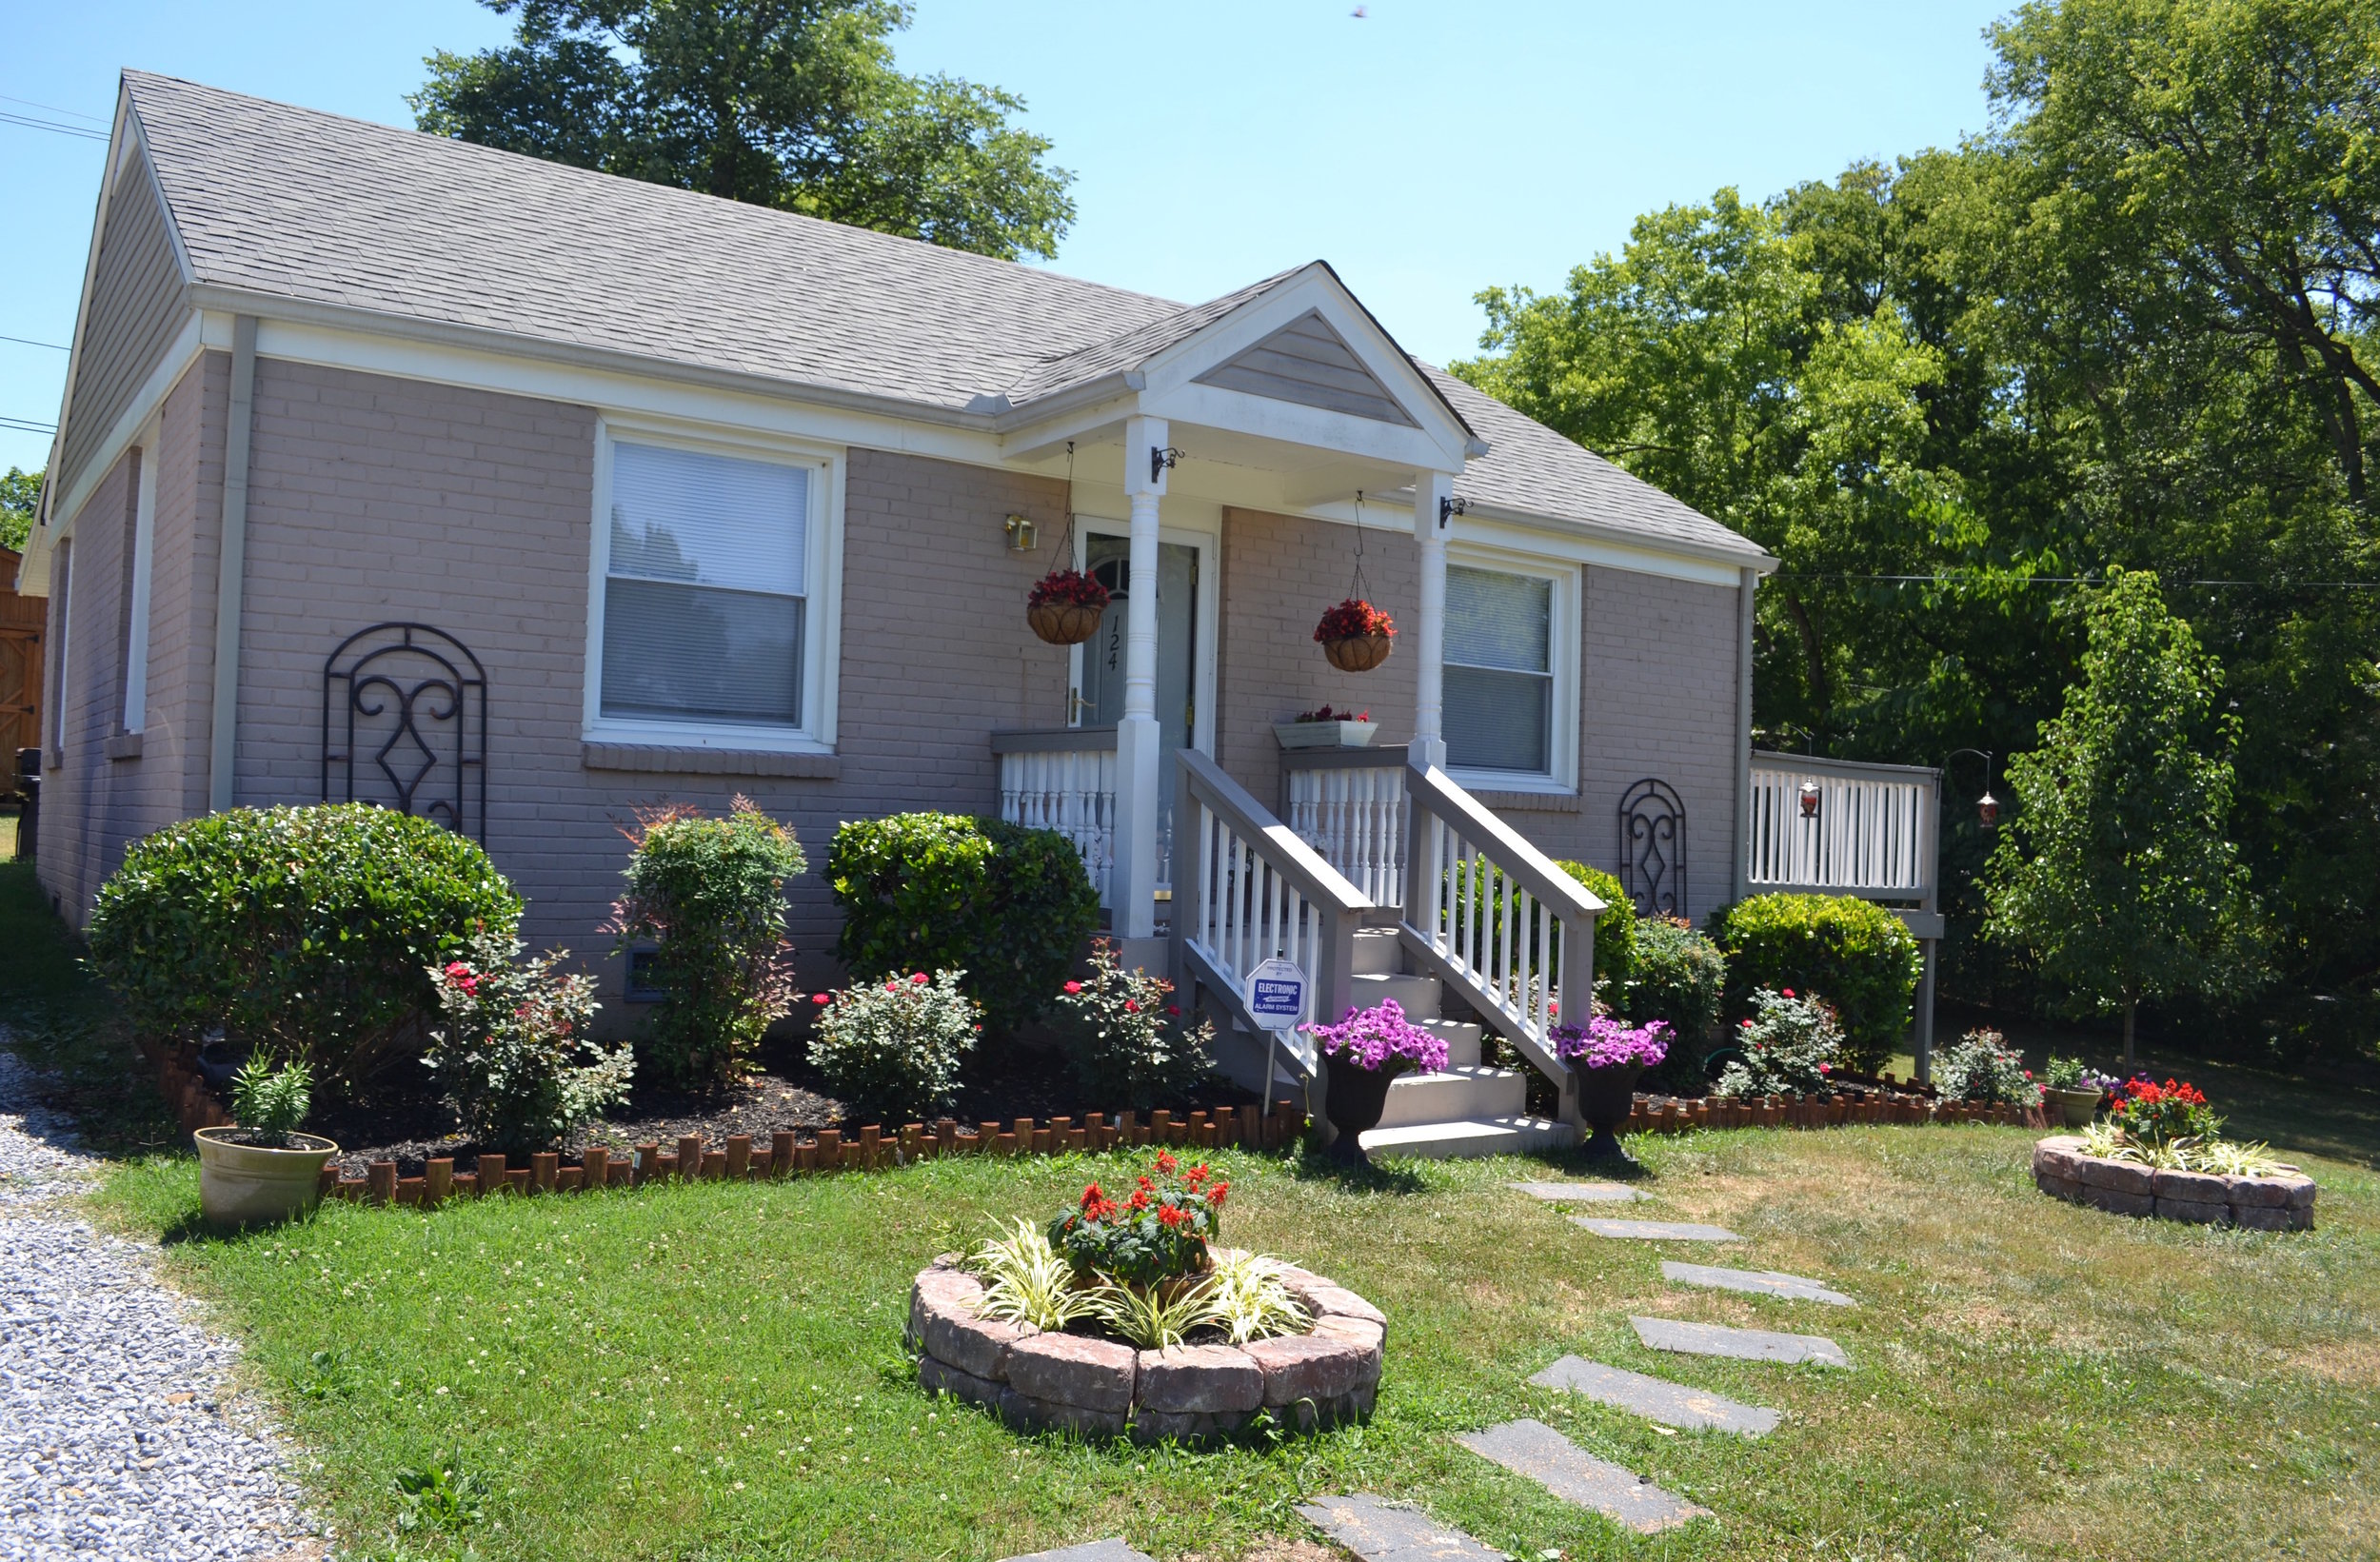 124 JUST RENTED   MADISON: 124 E Due West:  Home: 2 Br, 1 Ba